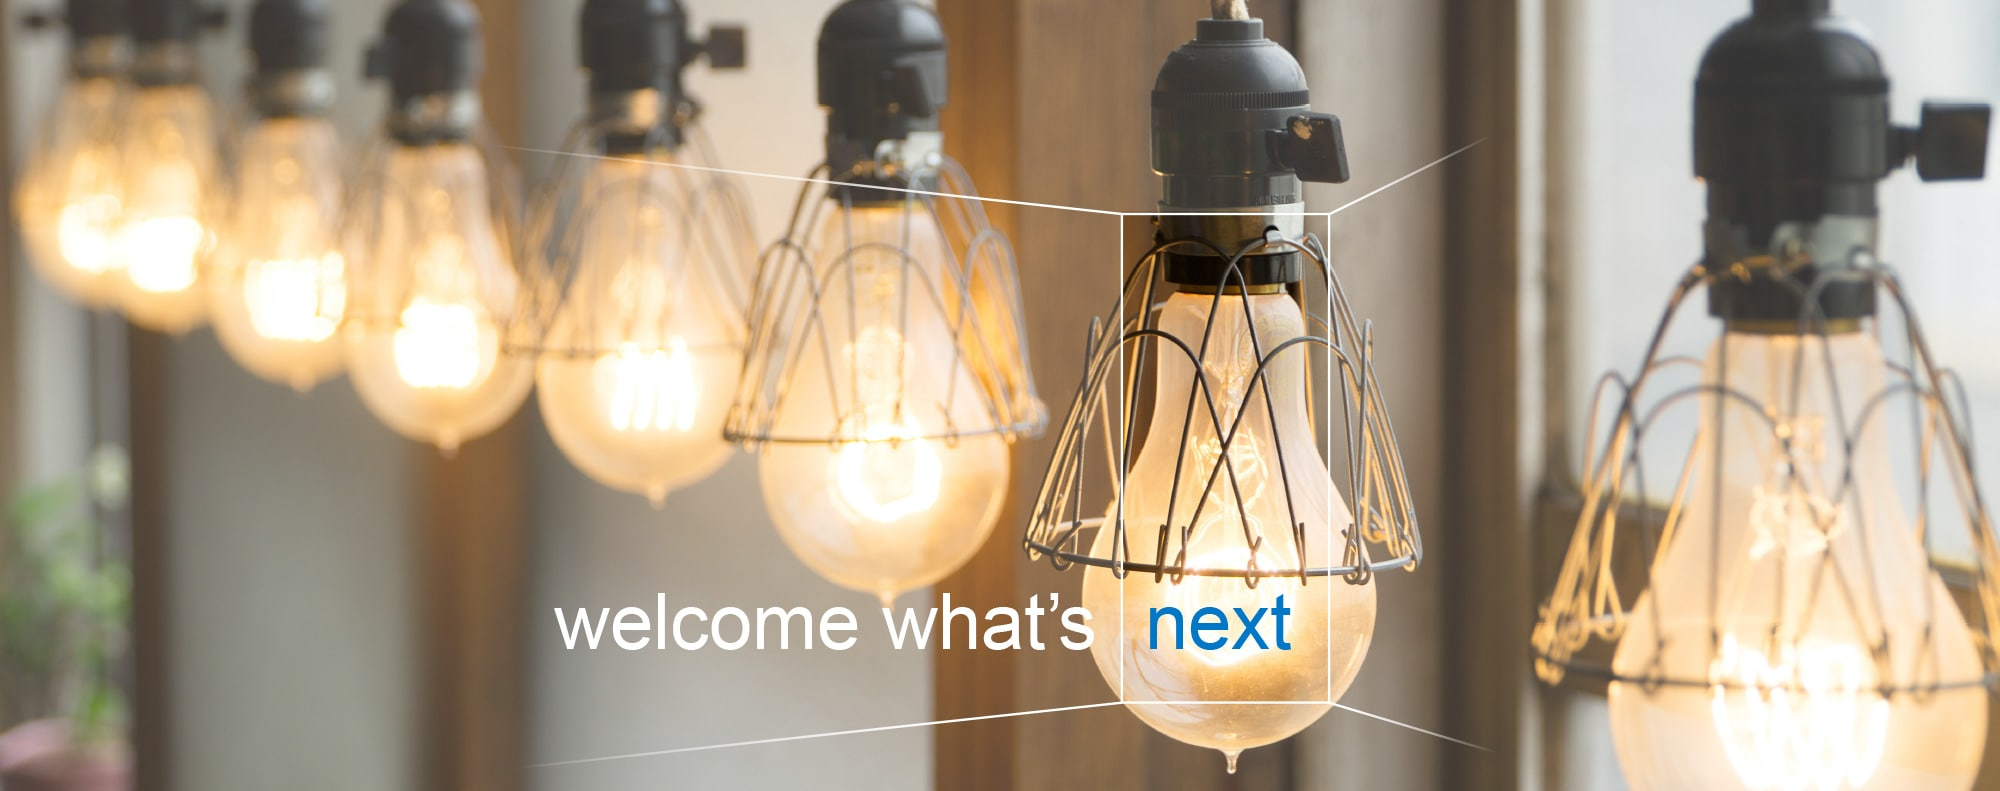 Blue Door Consulting - Welcome What's Next